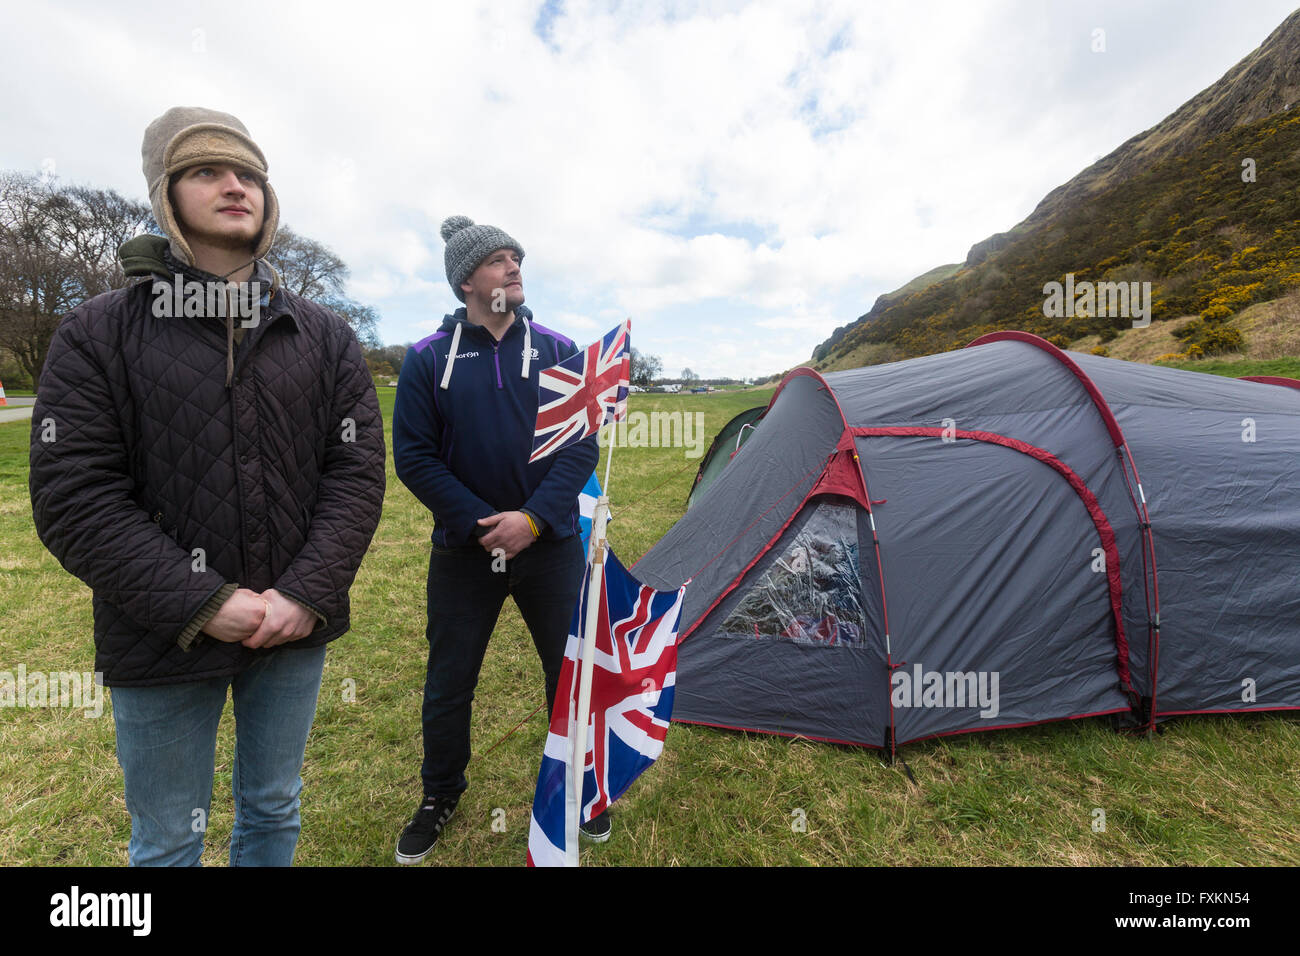 Holyrood Park, Edinburgh, Scotland. 16th April, 2016. Neil Tannahill and James Woodward have set up a rival camp - Stock Image